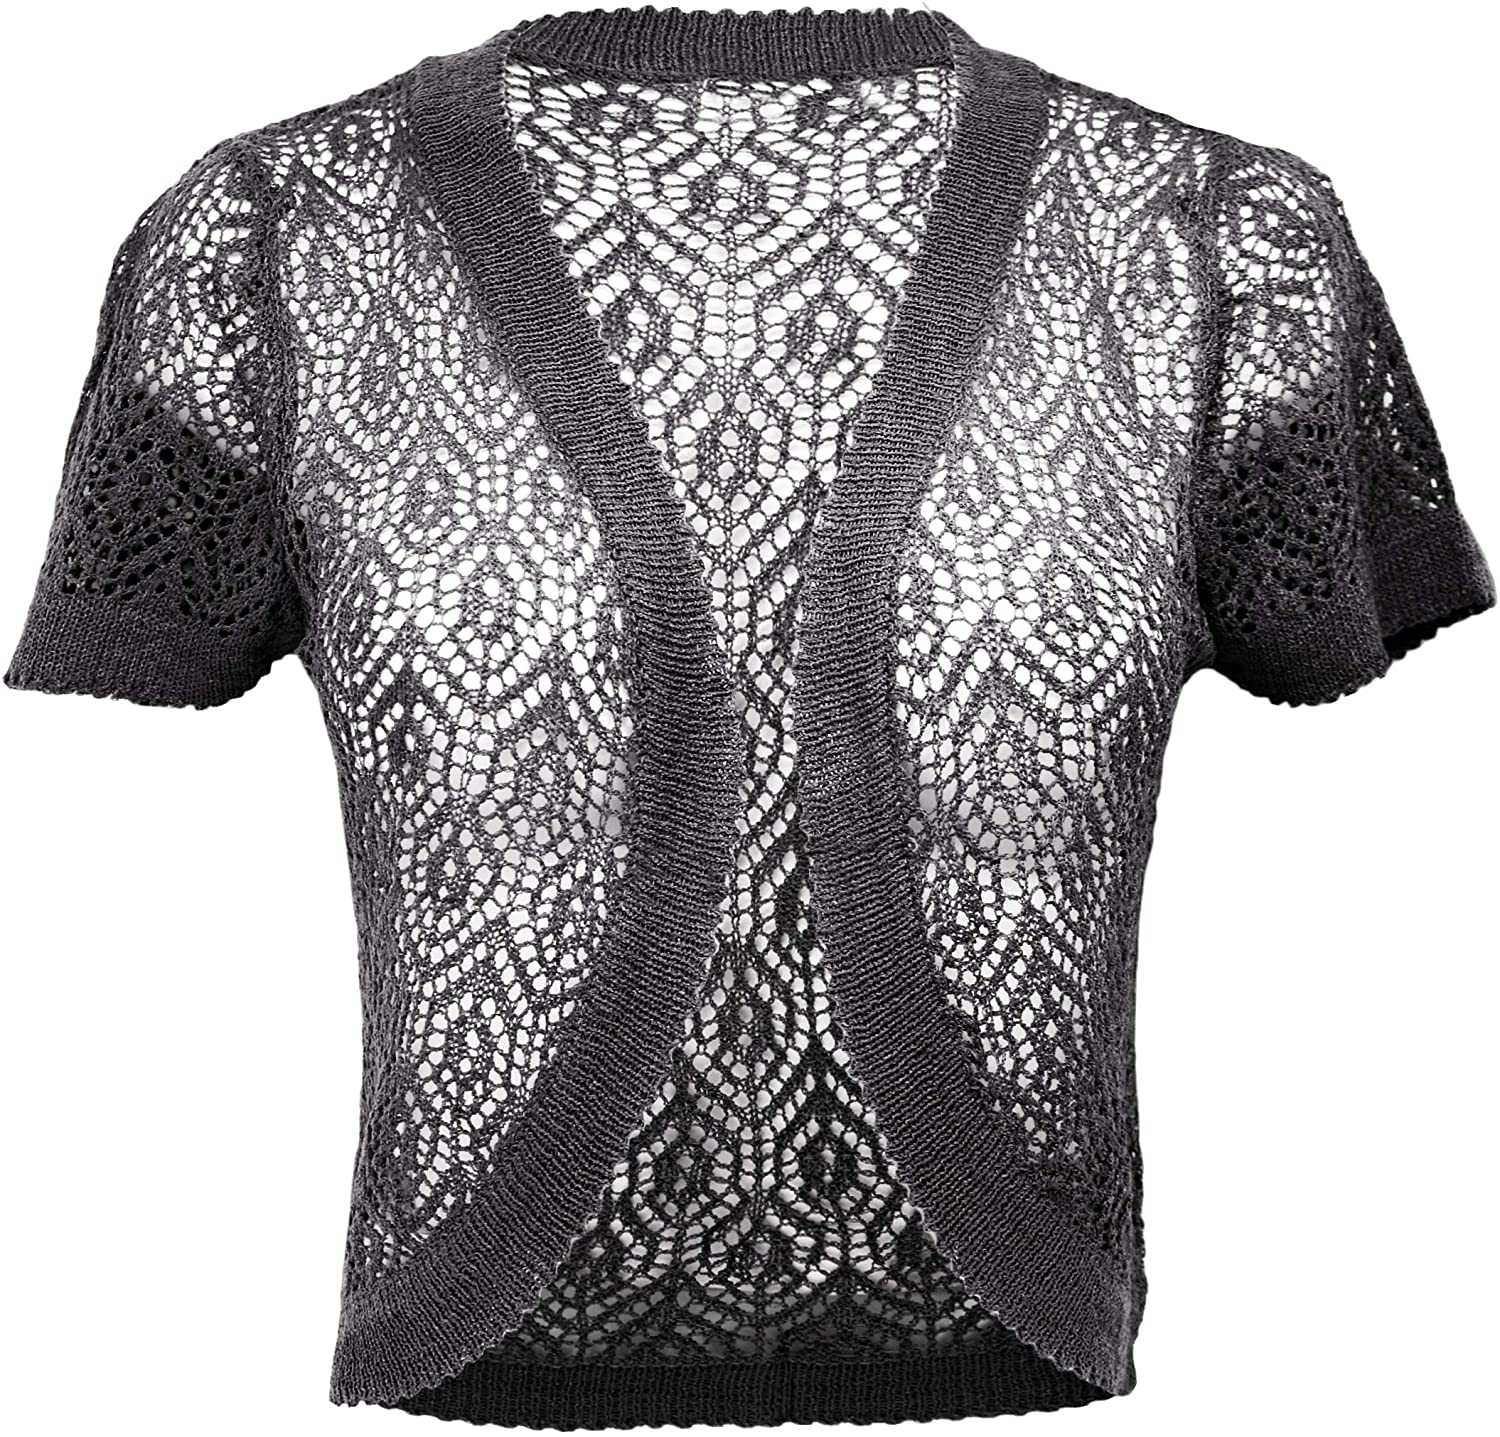 KMystic Short Sleeve Knitted Crochet Shrug Bolero Crop Top